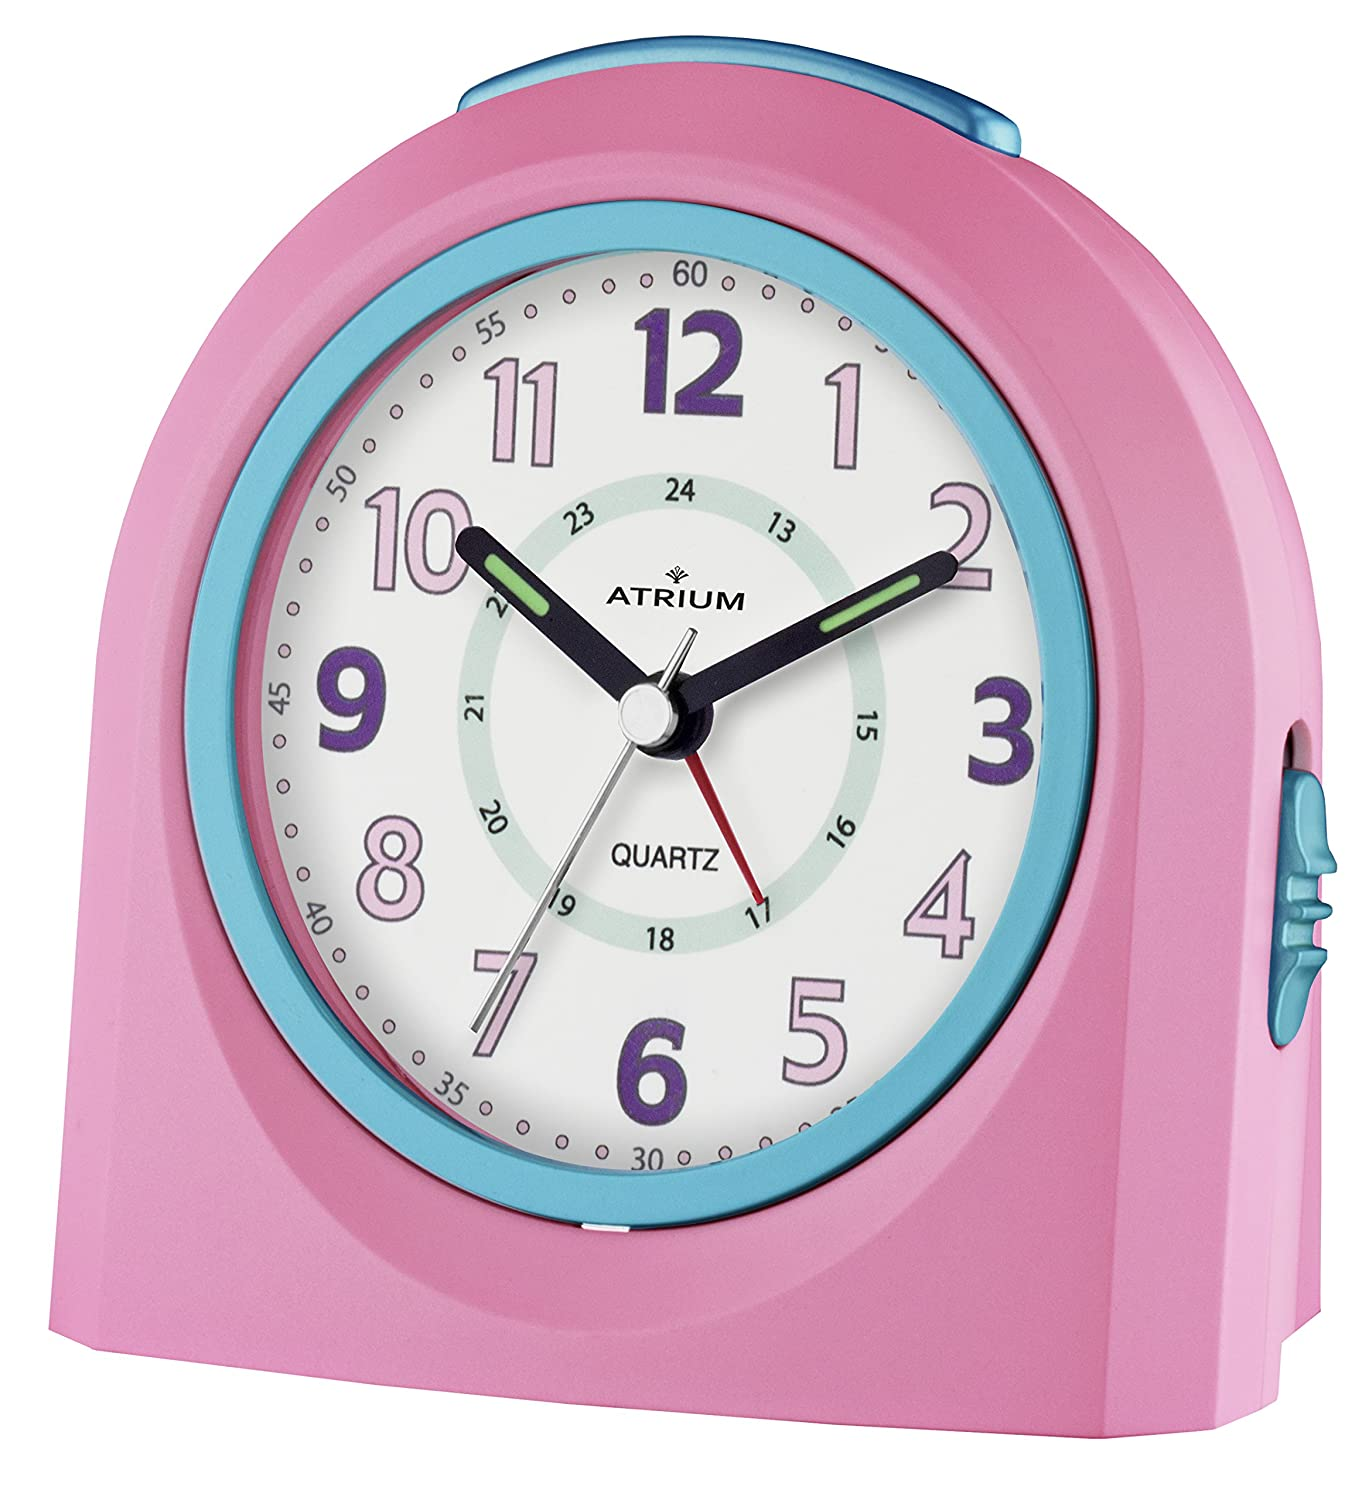 ATRIUM alarm clock analogue pink silent, with light and snooze function A921-17